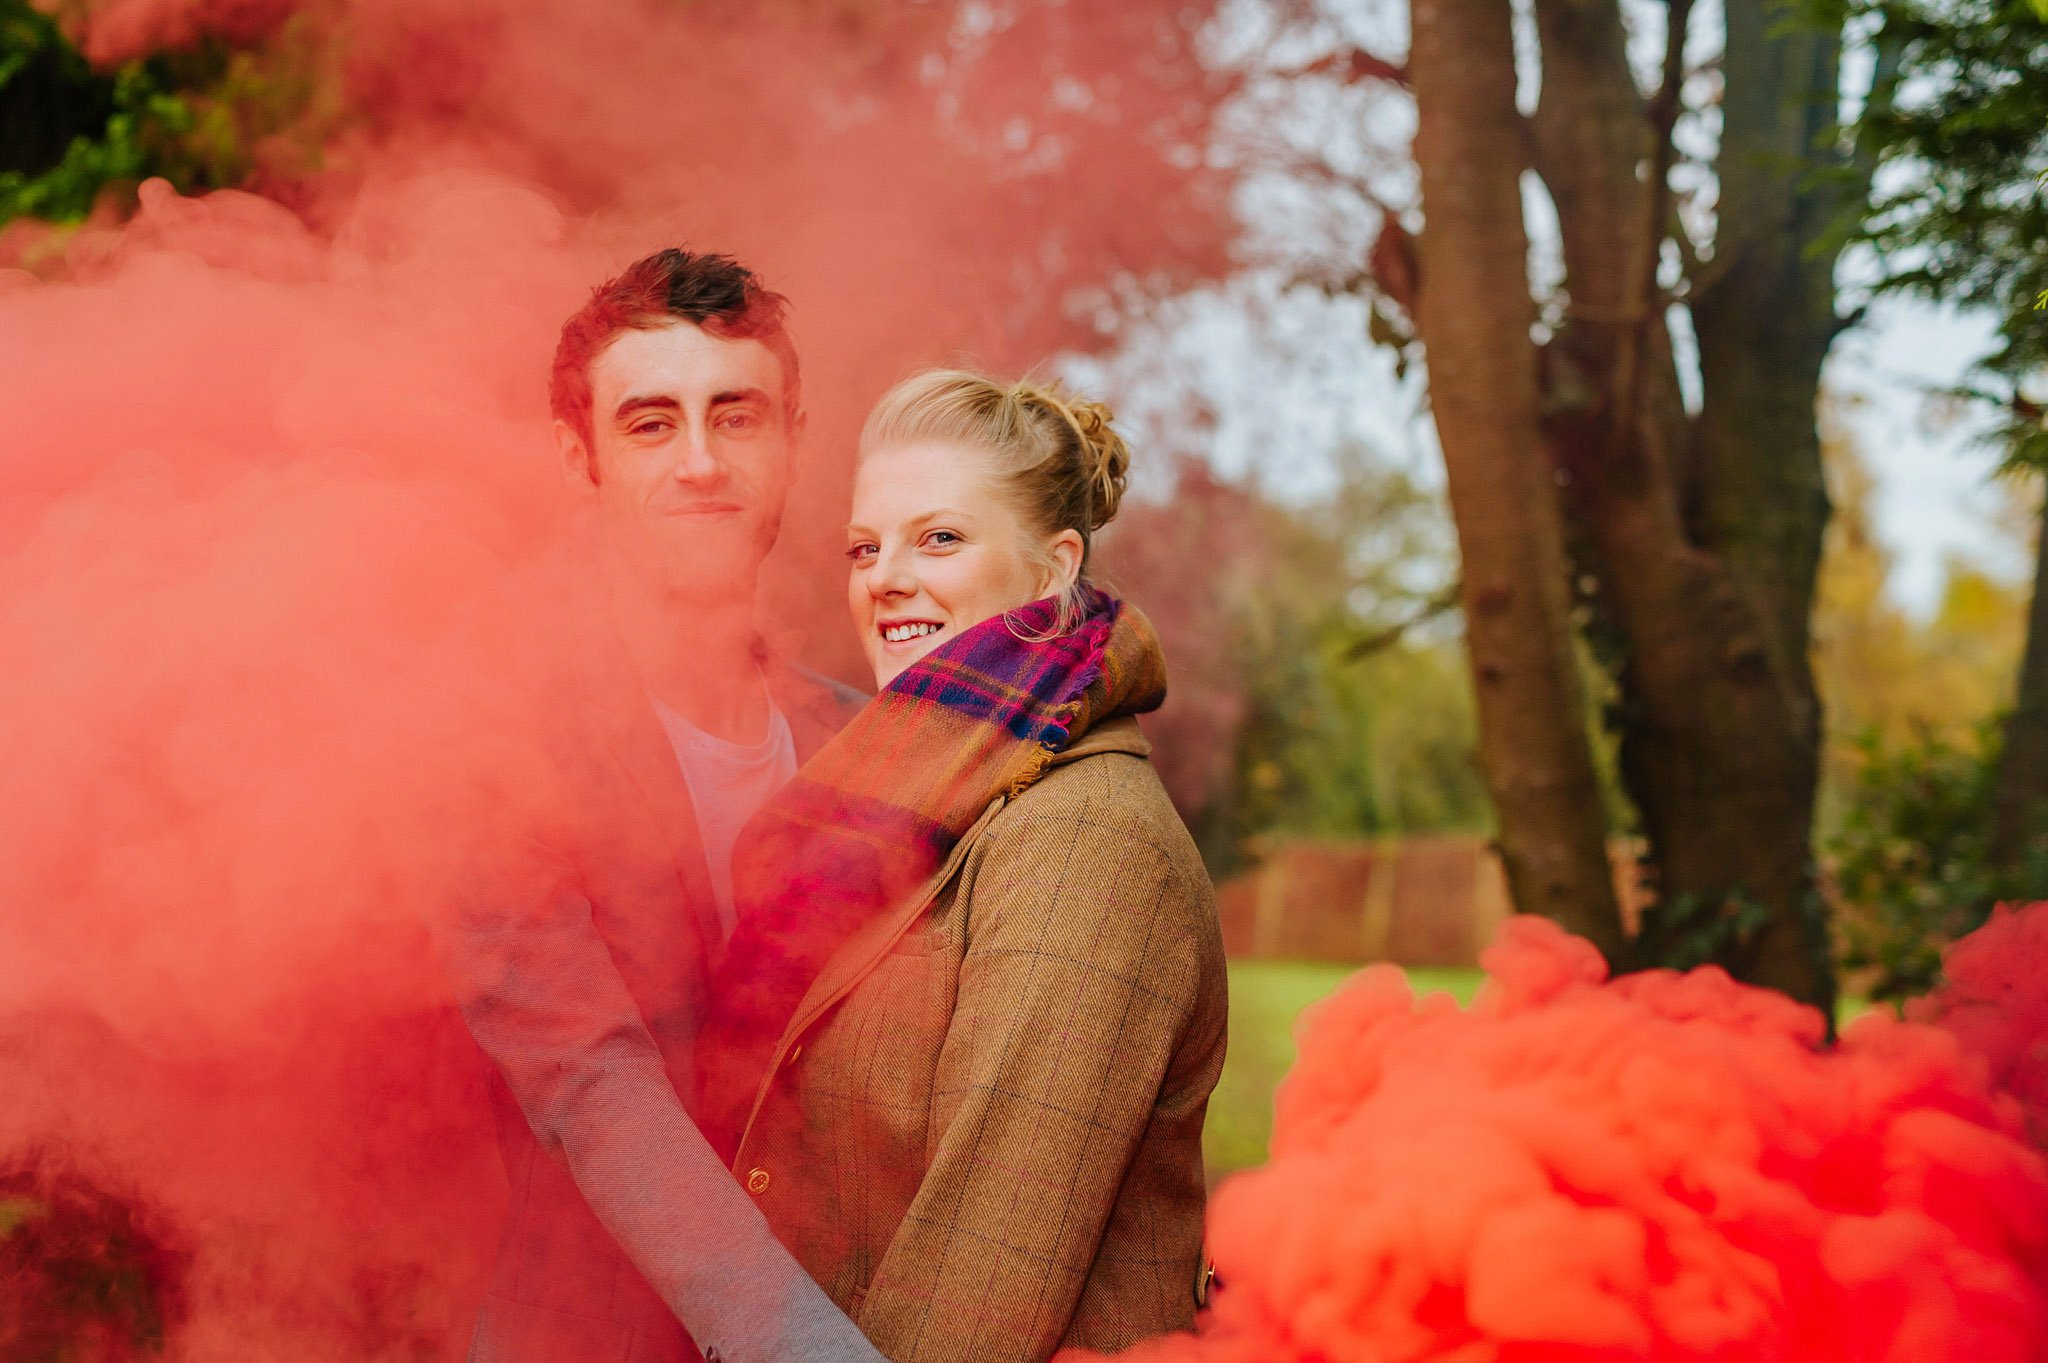 Becky + Marcus | Engagement session in Herefordshire 1